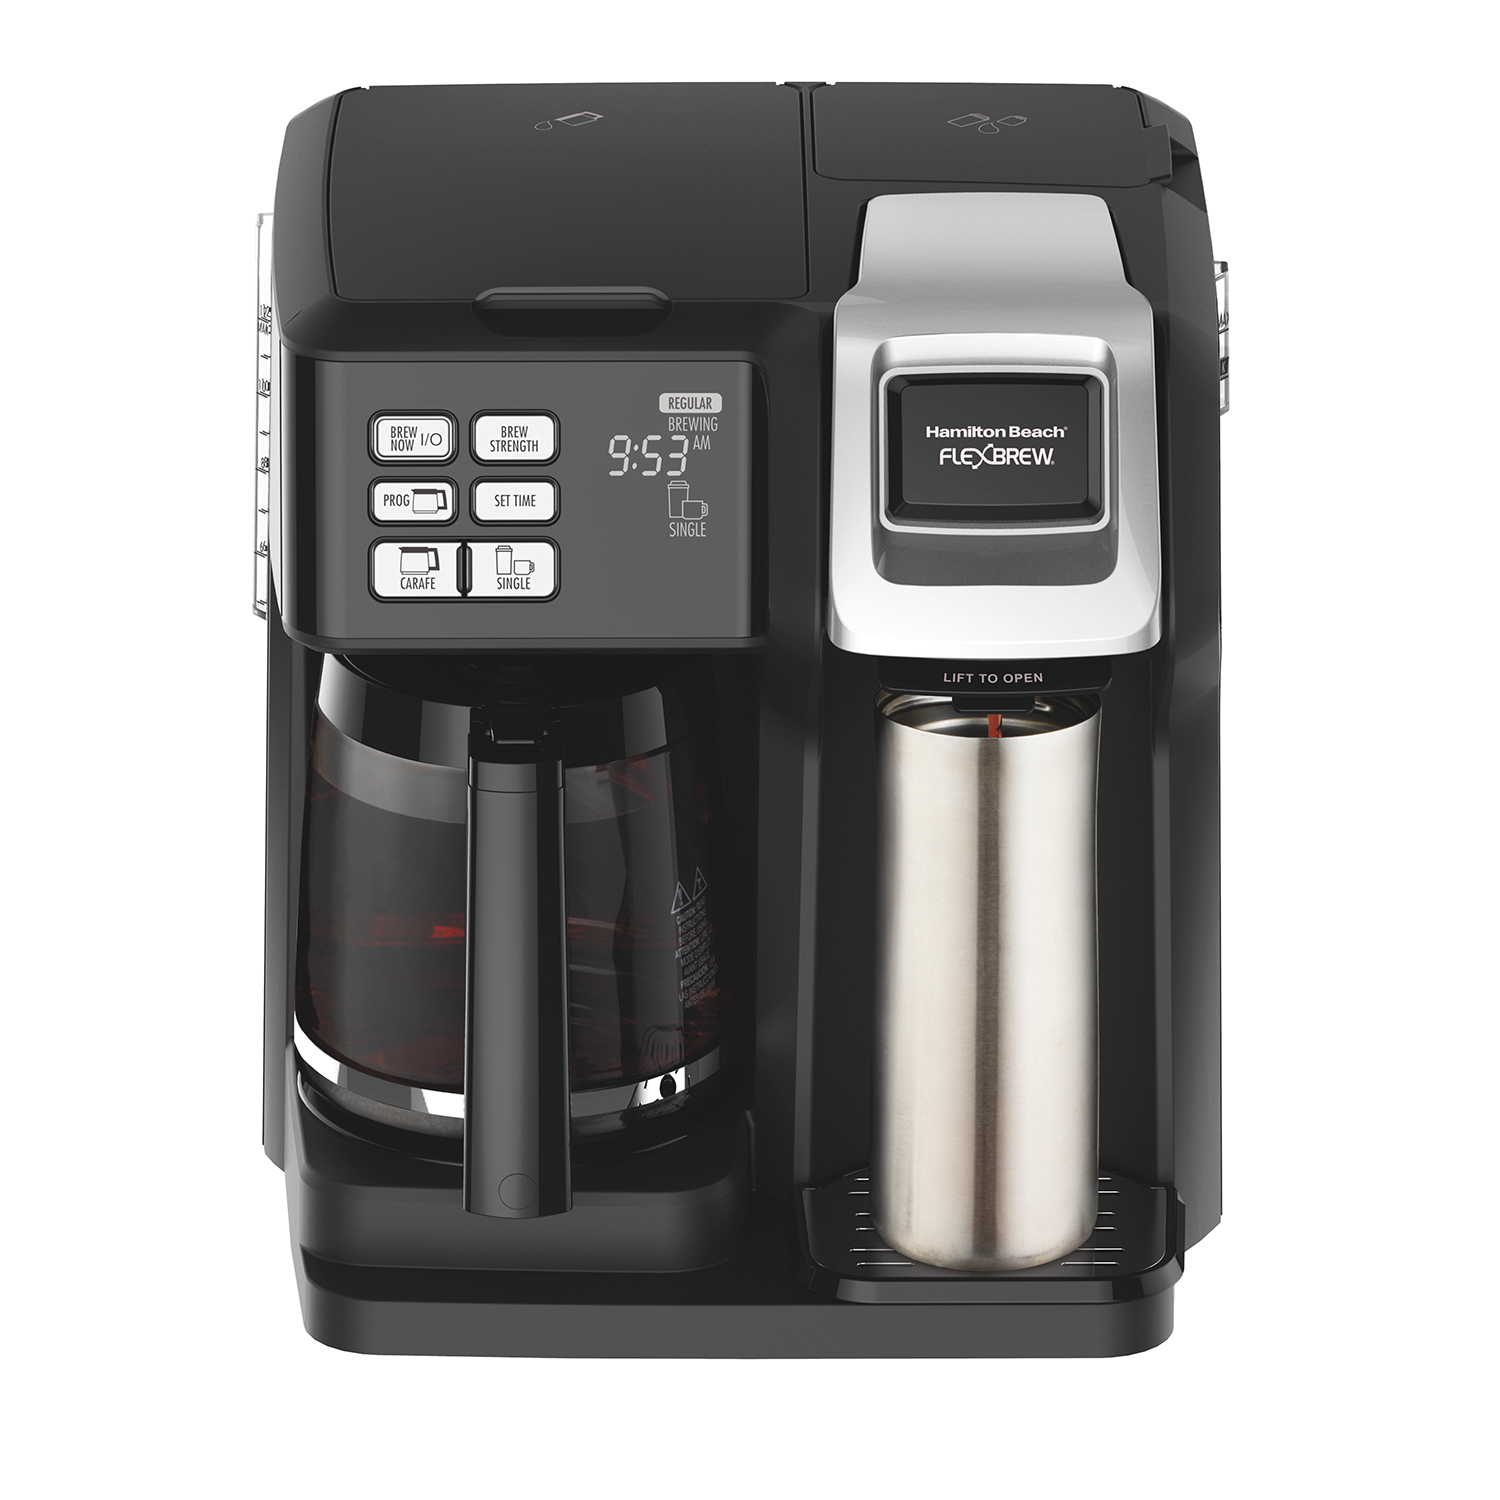 FlexBrew® 2-Way Coffee Maker with 12-Cup Carafe & Pod Brewer, Black (49976)